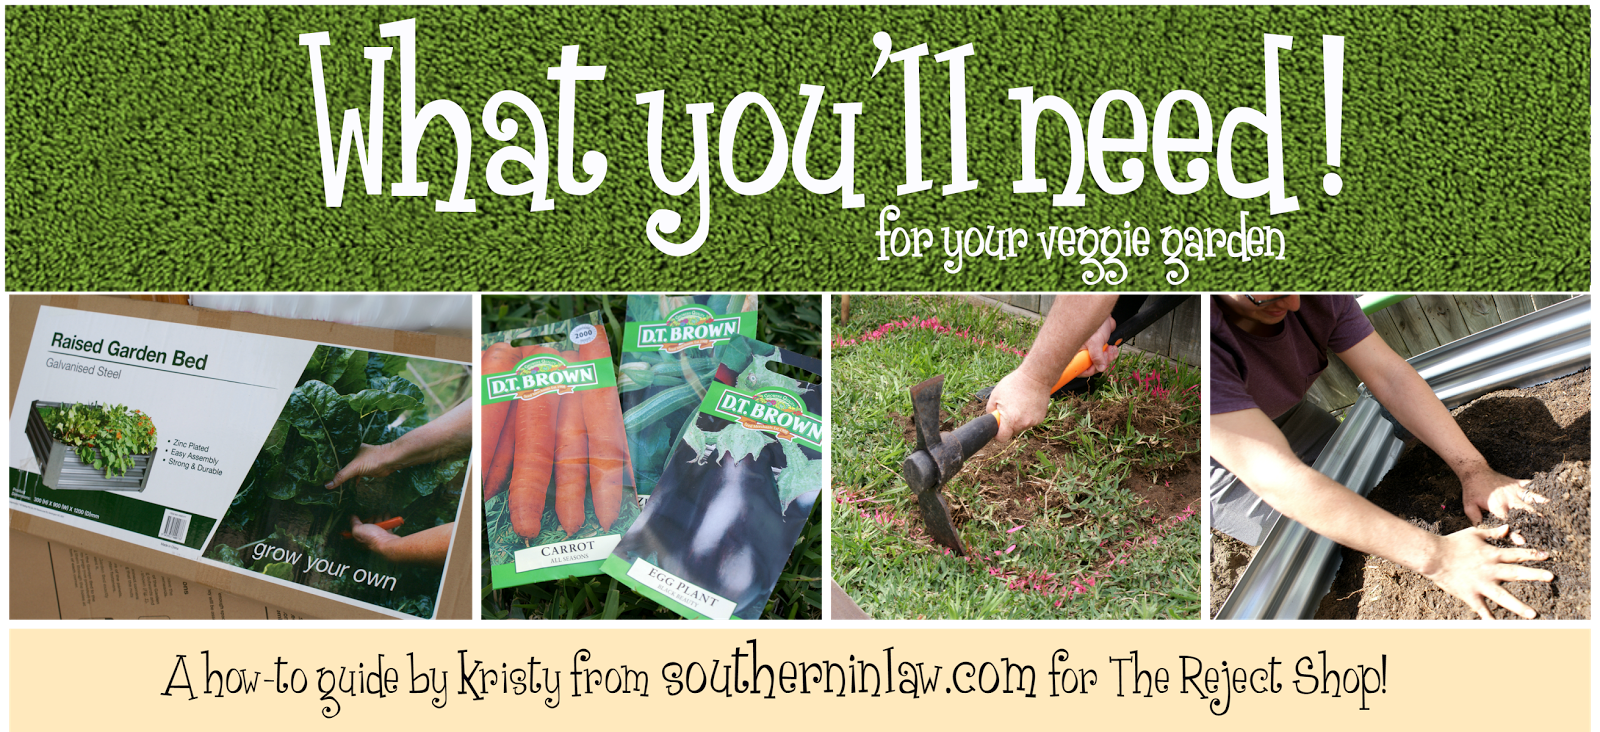 How to Make Your Own Raised Veggie Patch and Grow Your Own Vegetables from Seed - Reject Shop Raised Garden Bed